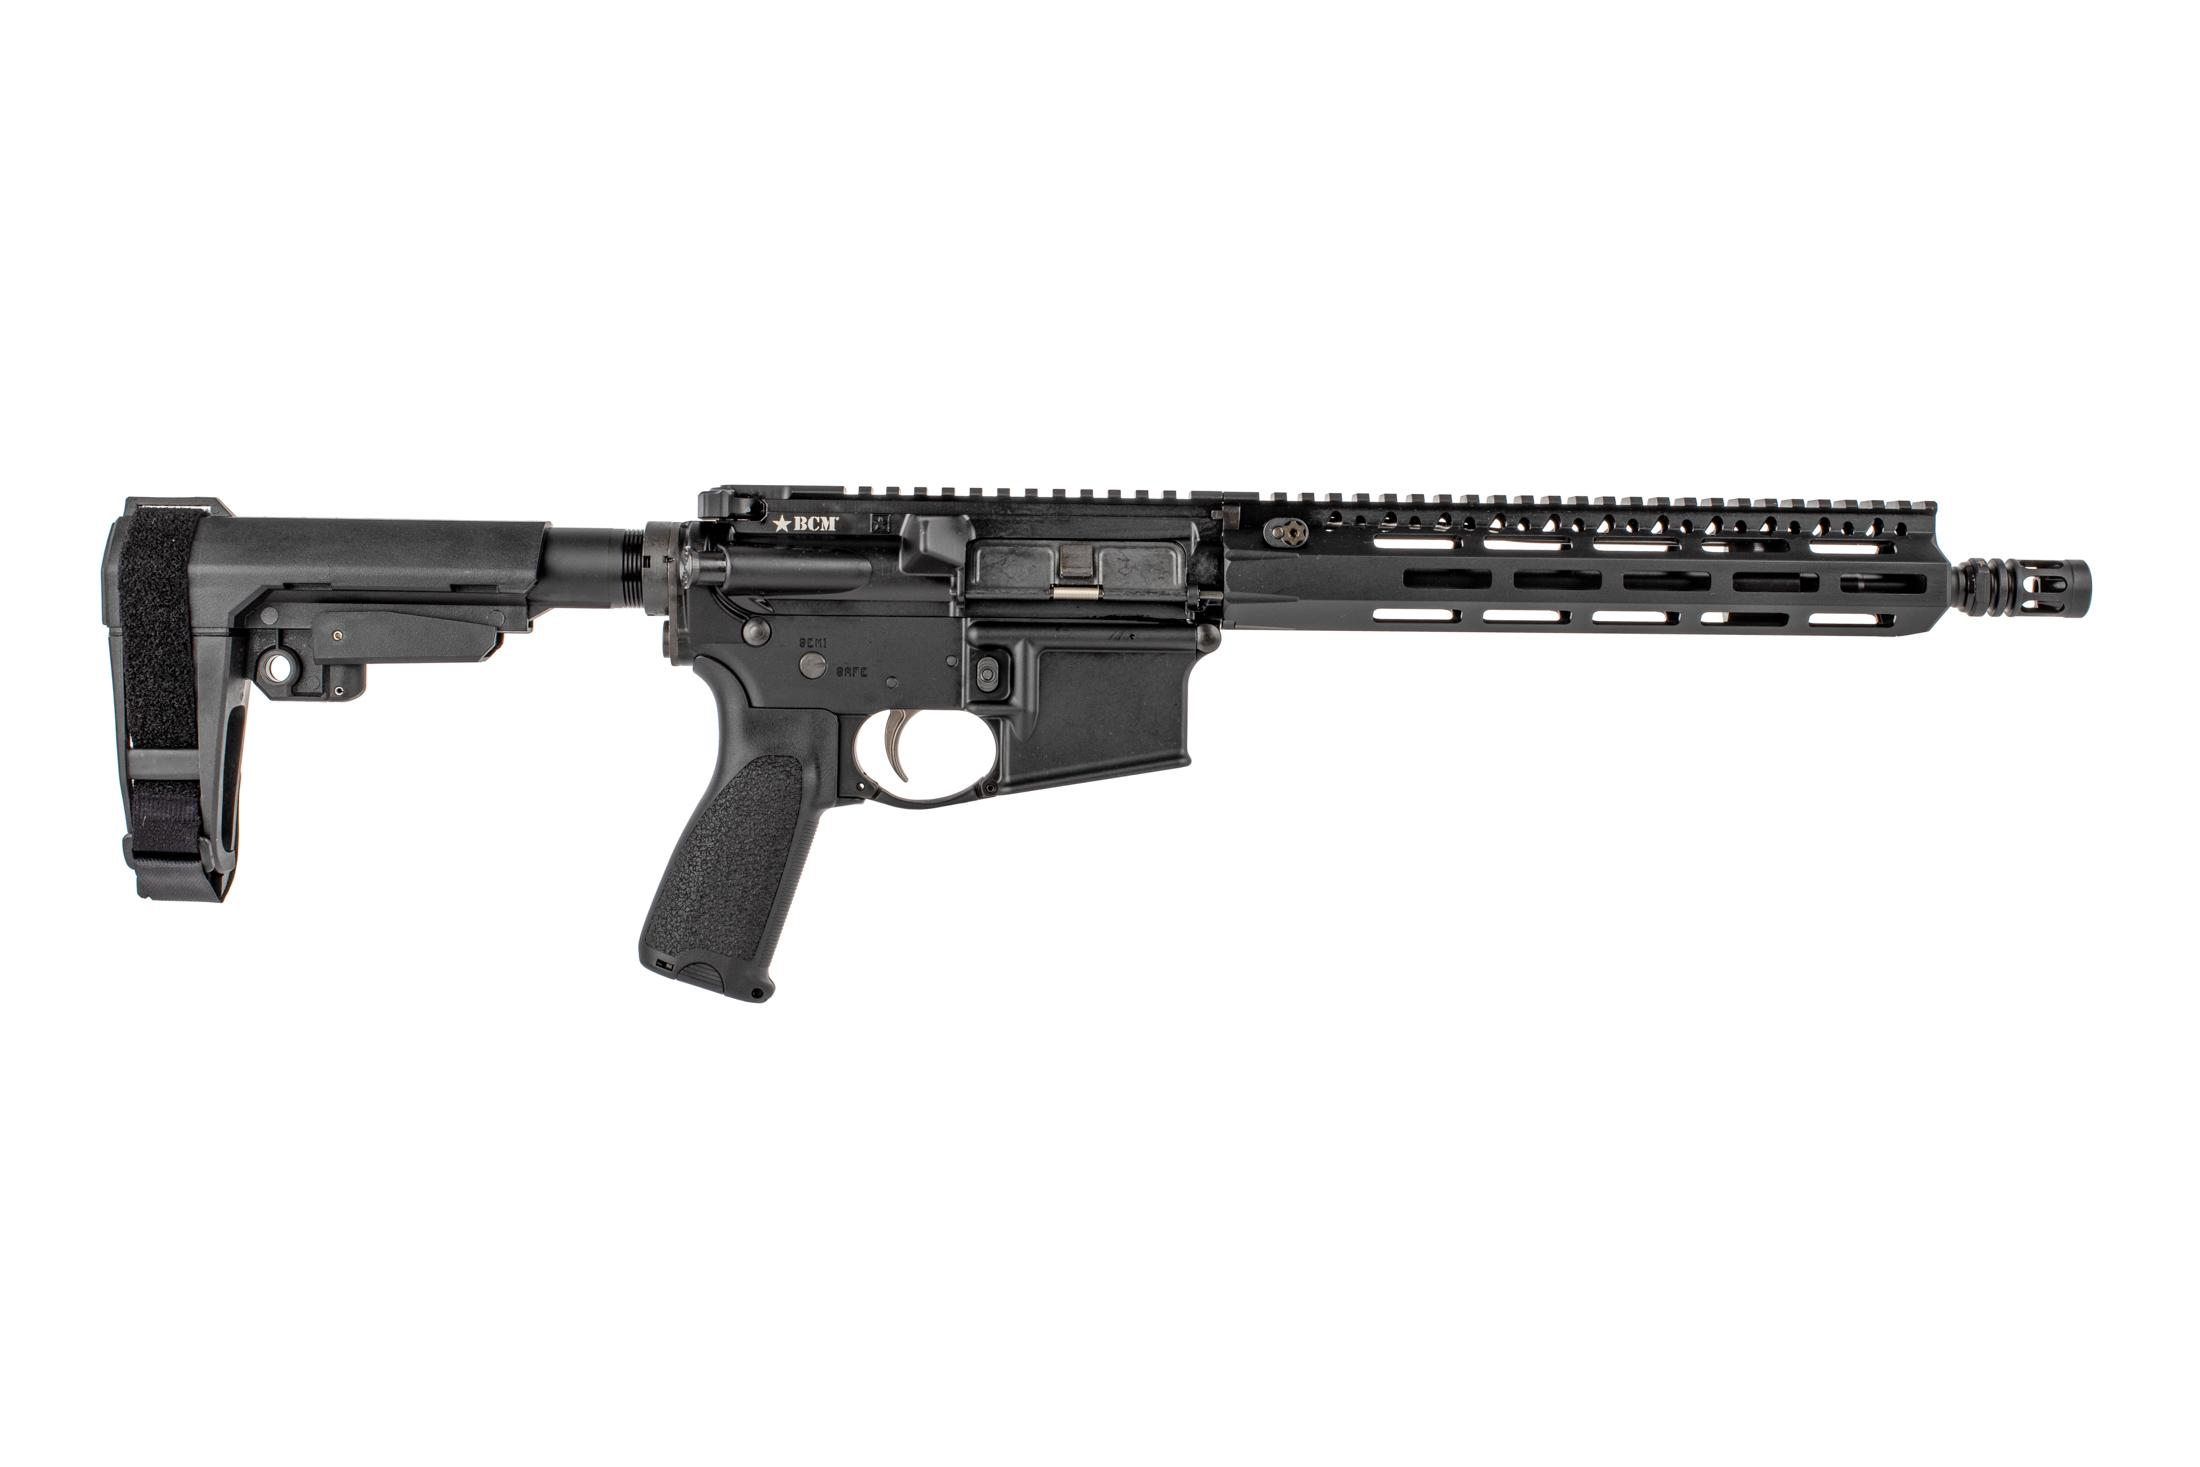 The Bravo Company Manufacturing Recce-11 AR15 pistol is chambered in 5.56 NATO